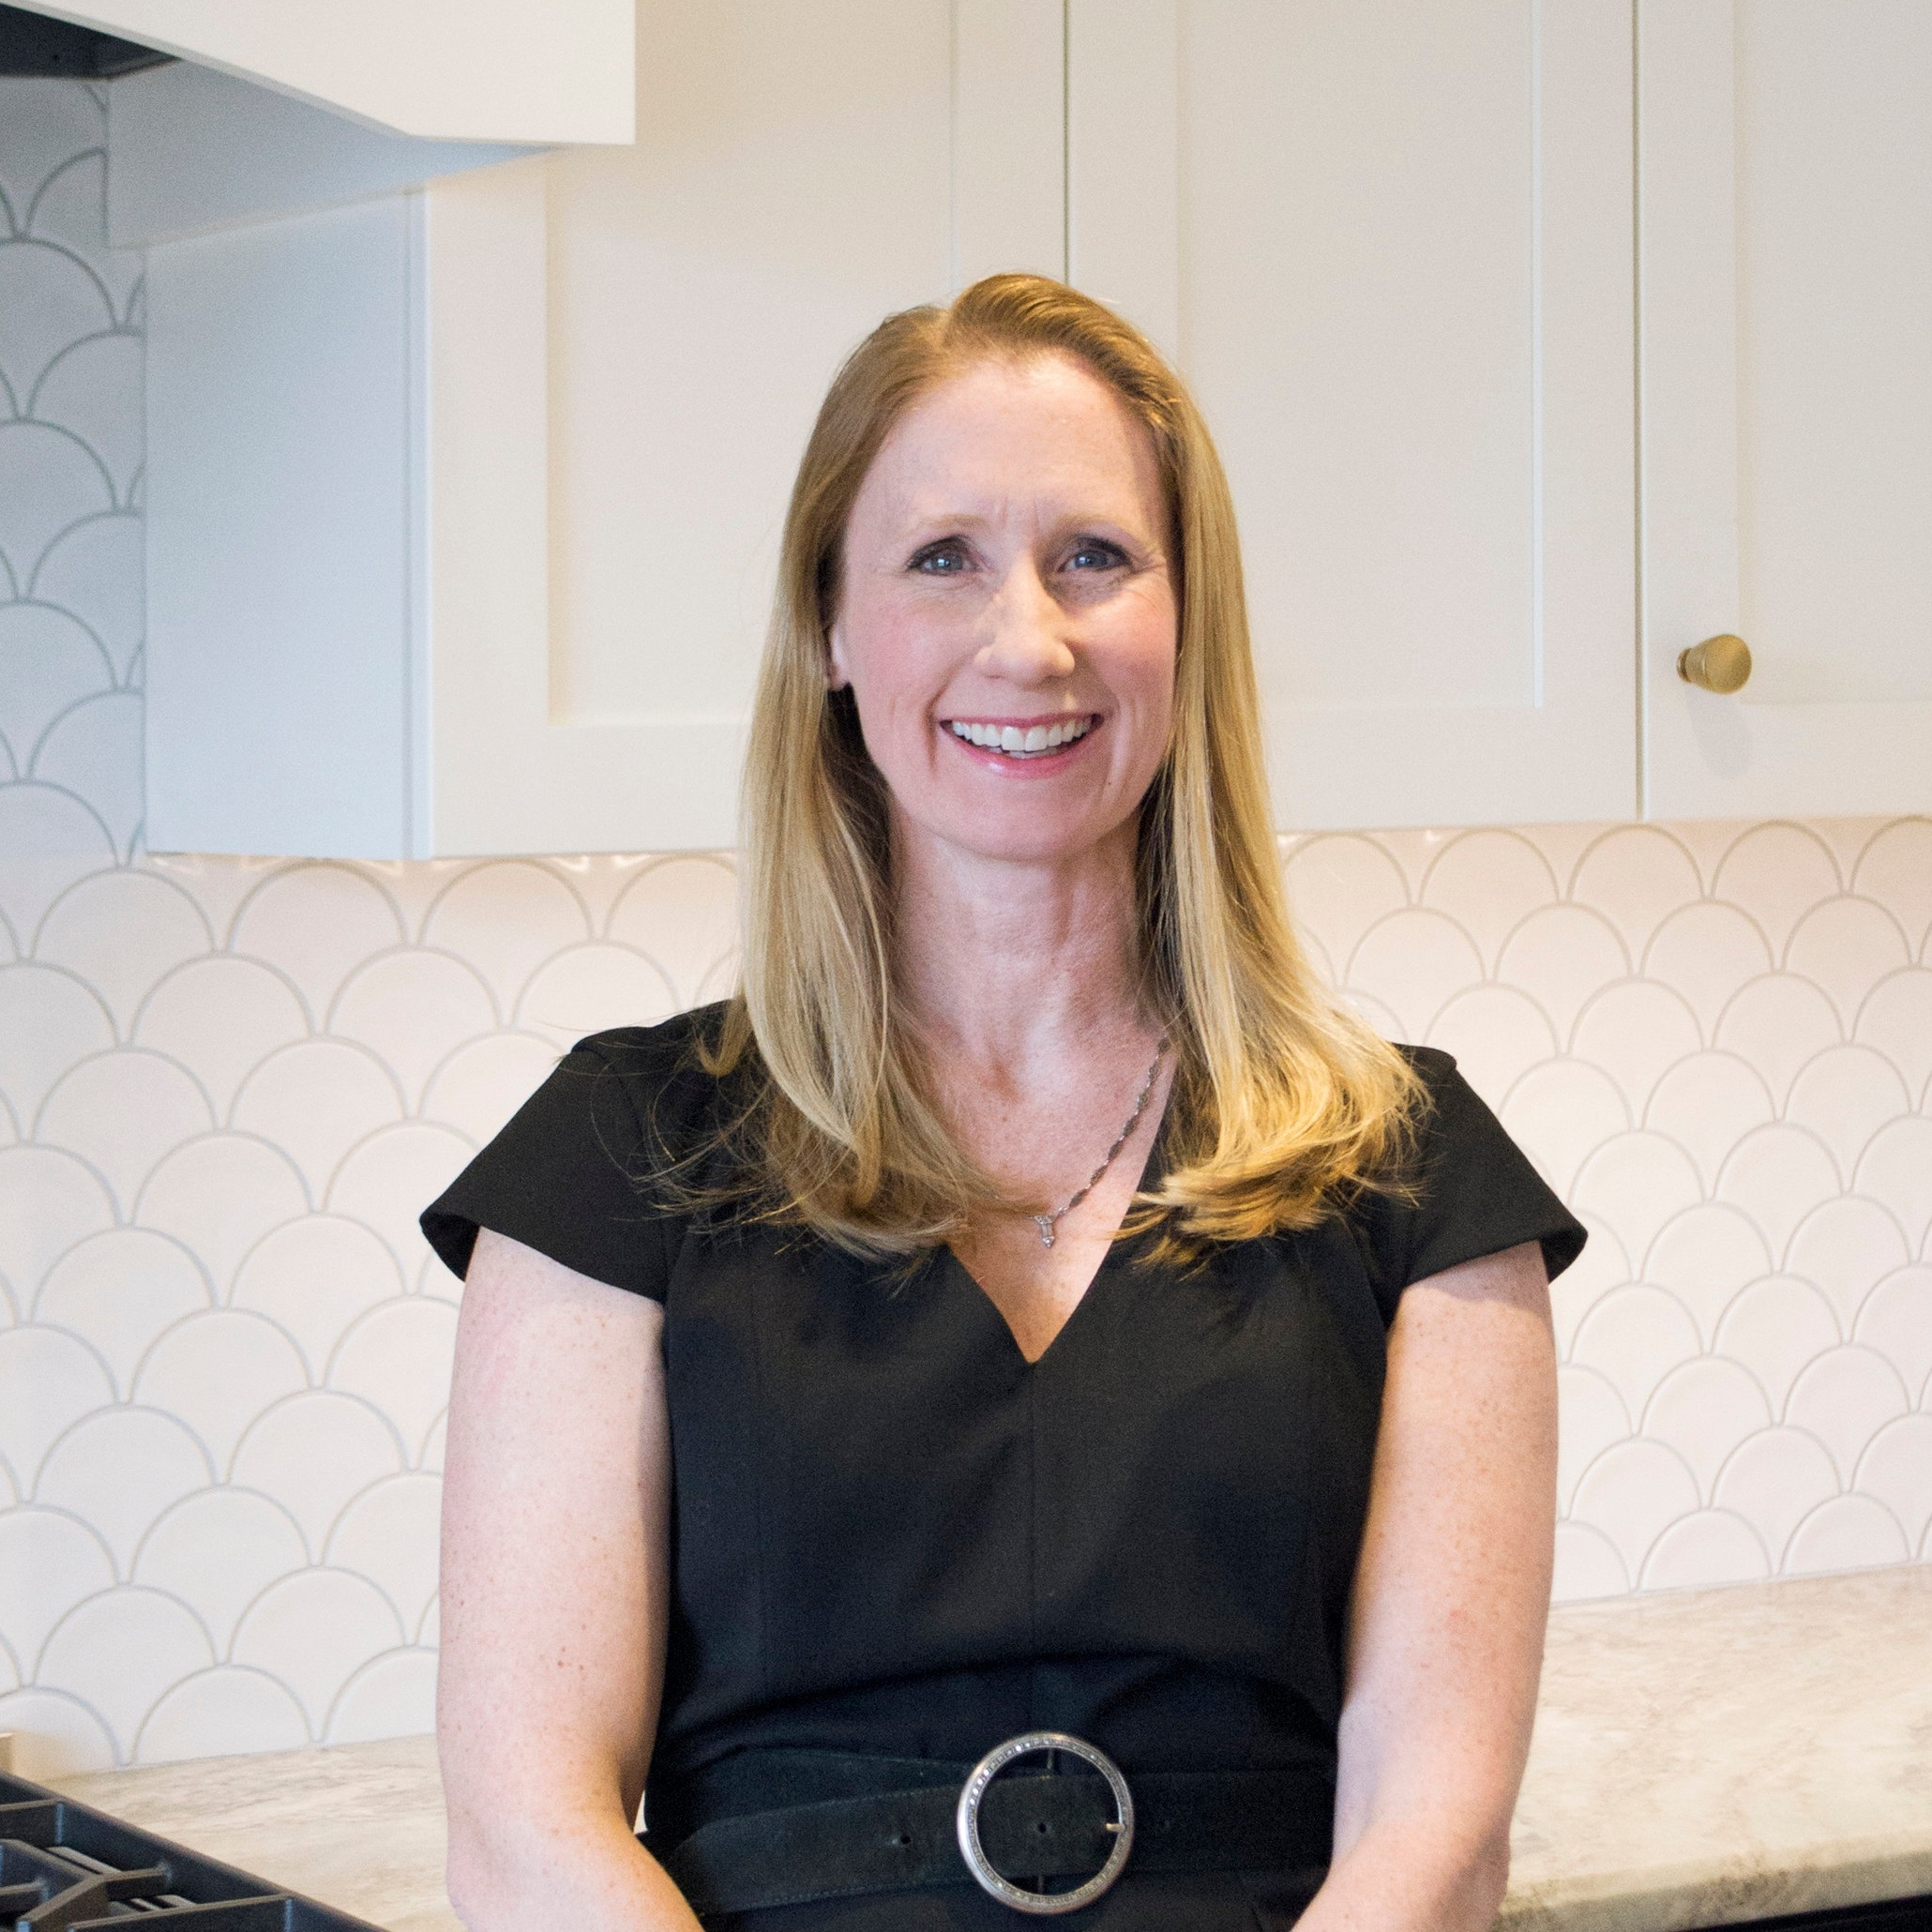 Allison B. Stowers, CKD   Kitchen and Bath Designer  Allison is a Certified Kitchen Designer, who has been a part of the kitchen and bath industry for over 20 years. She joined the Custom Kitchens family in 2005 when she moved to the Richmond area.   Read More